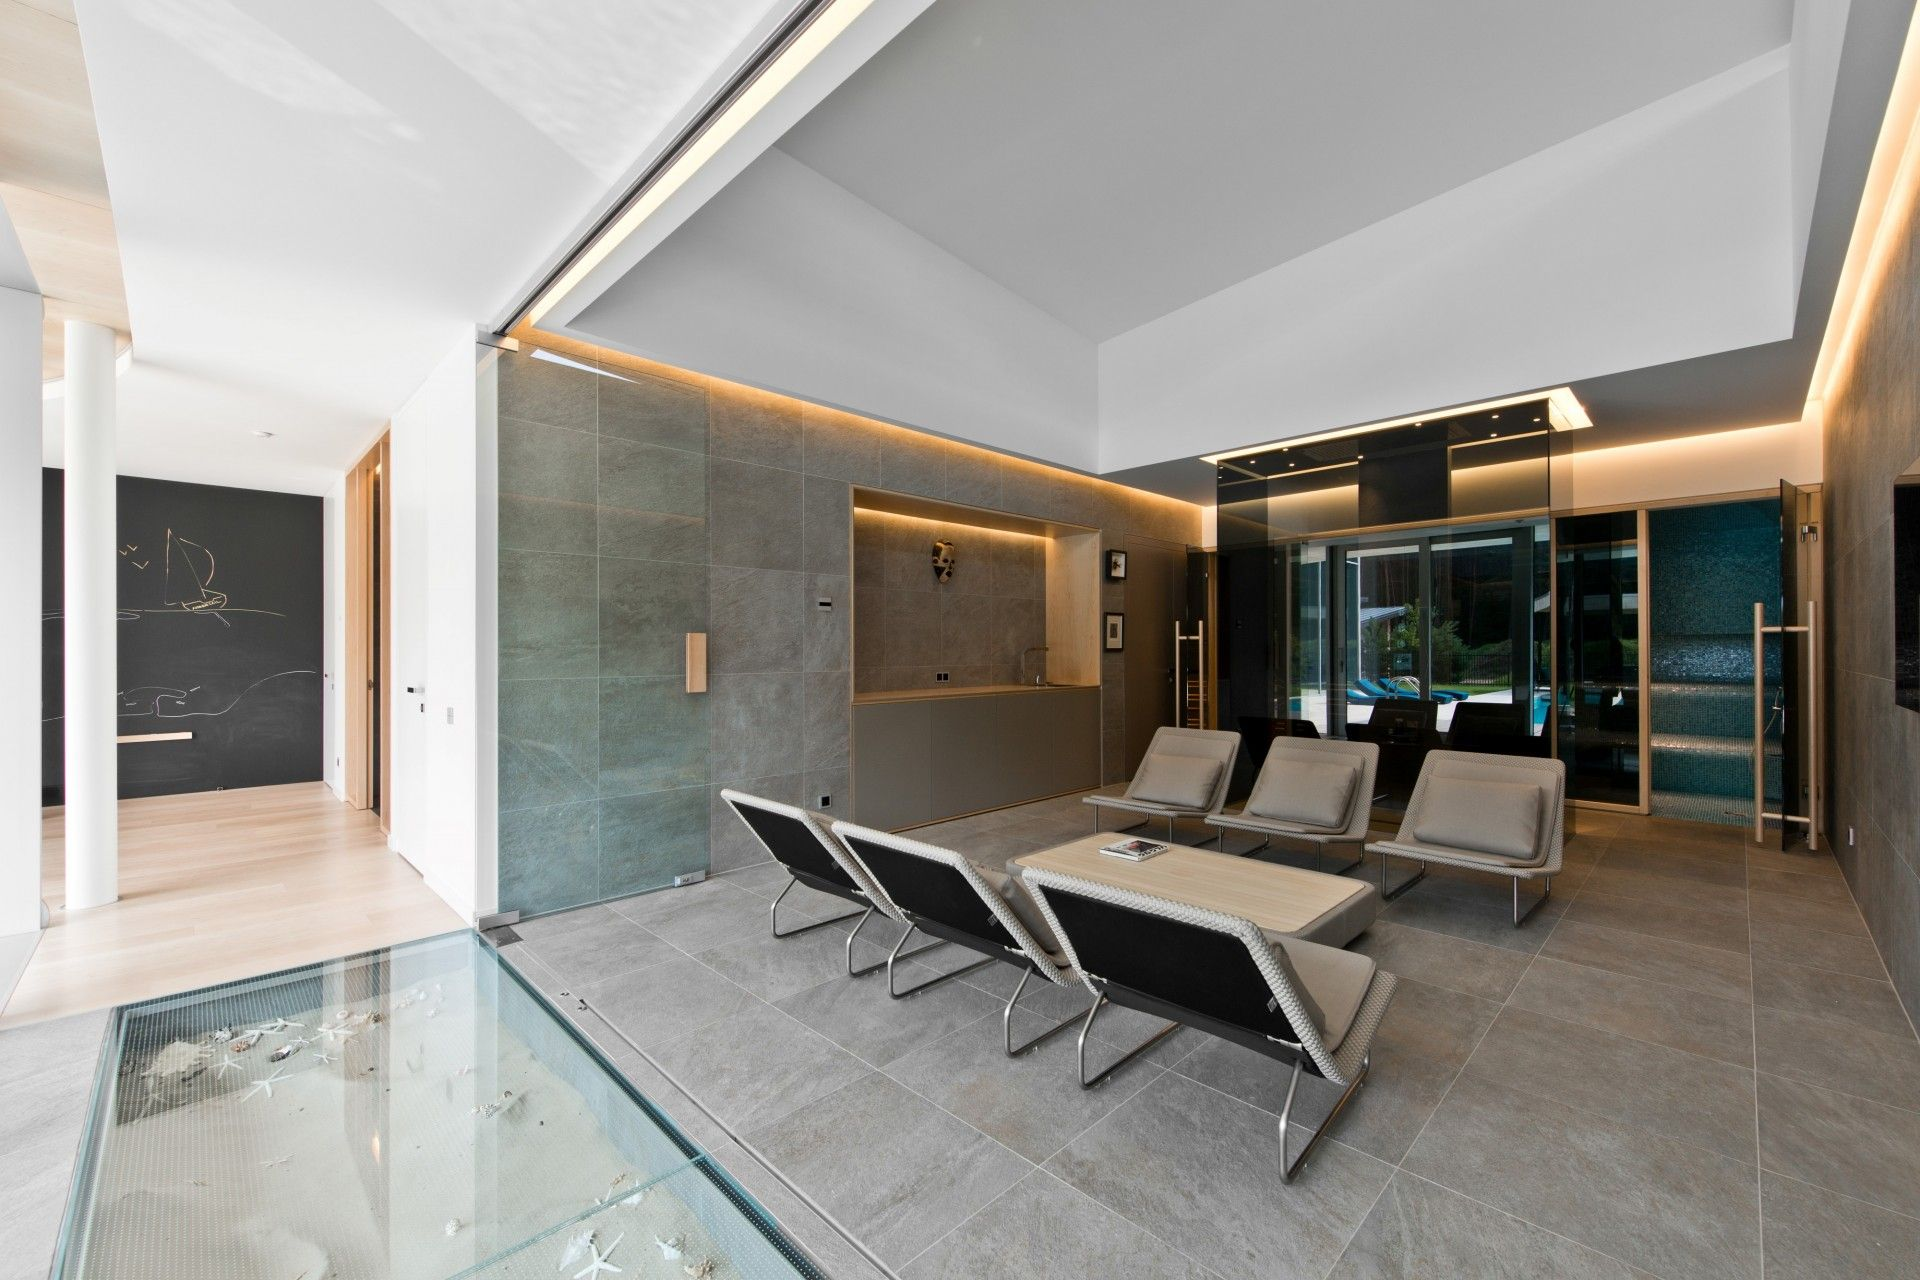 Rest room glass and sand floor modern residential house interior